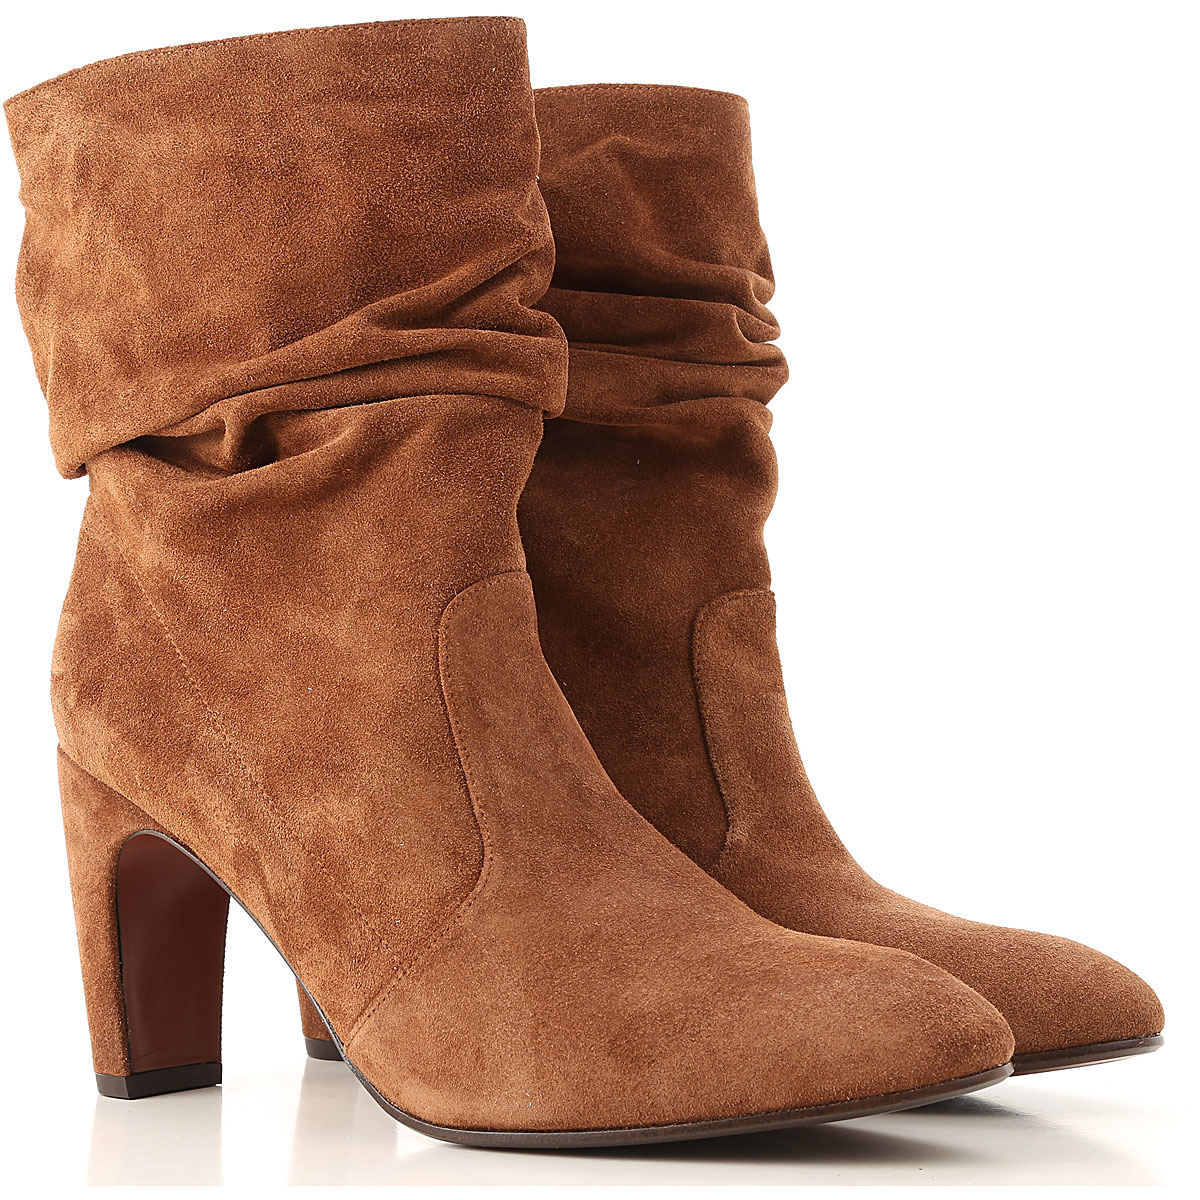 Image of Chie Mihara Boots for Women, Booties, Brown, Suede leather, 2017, 6 7 8 9